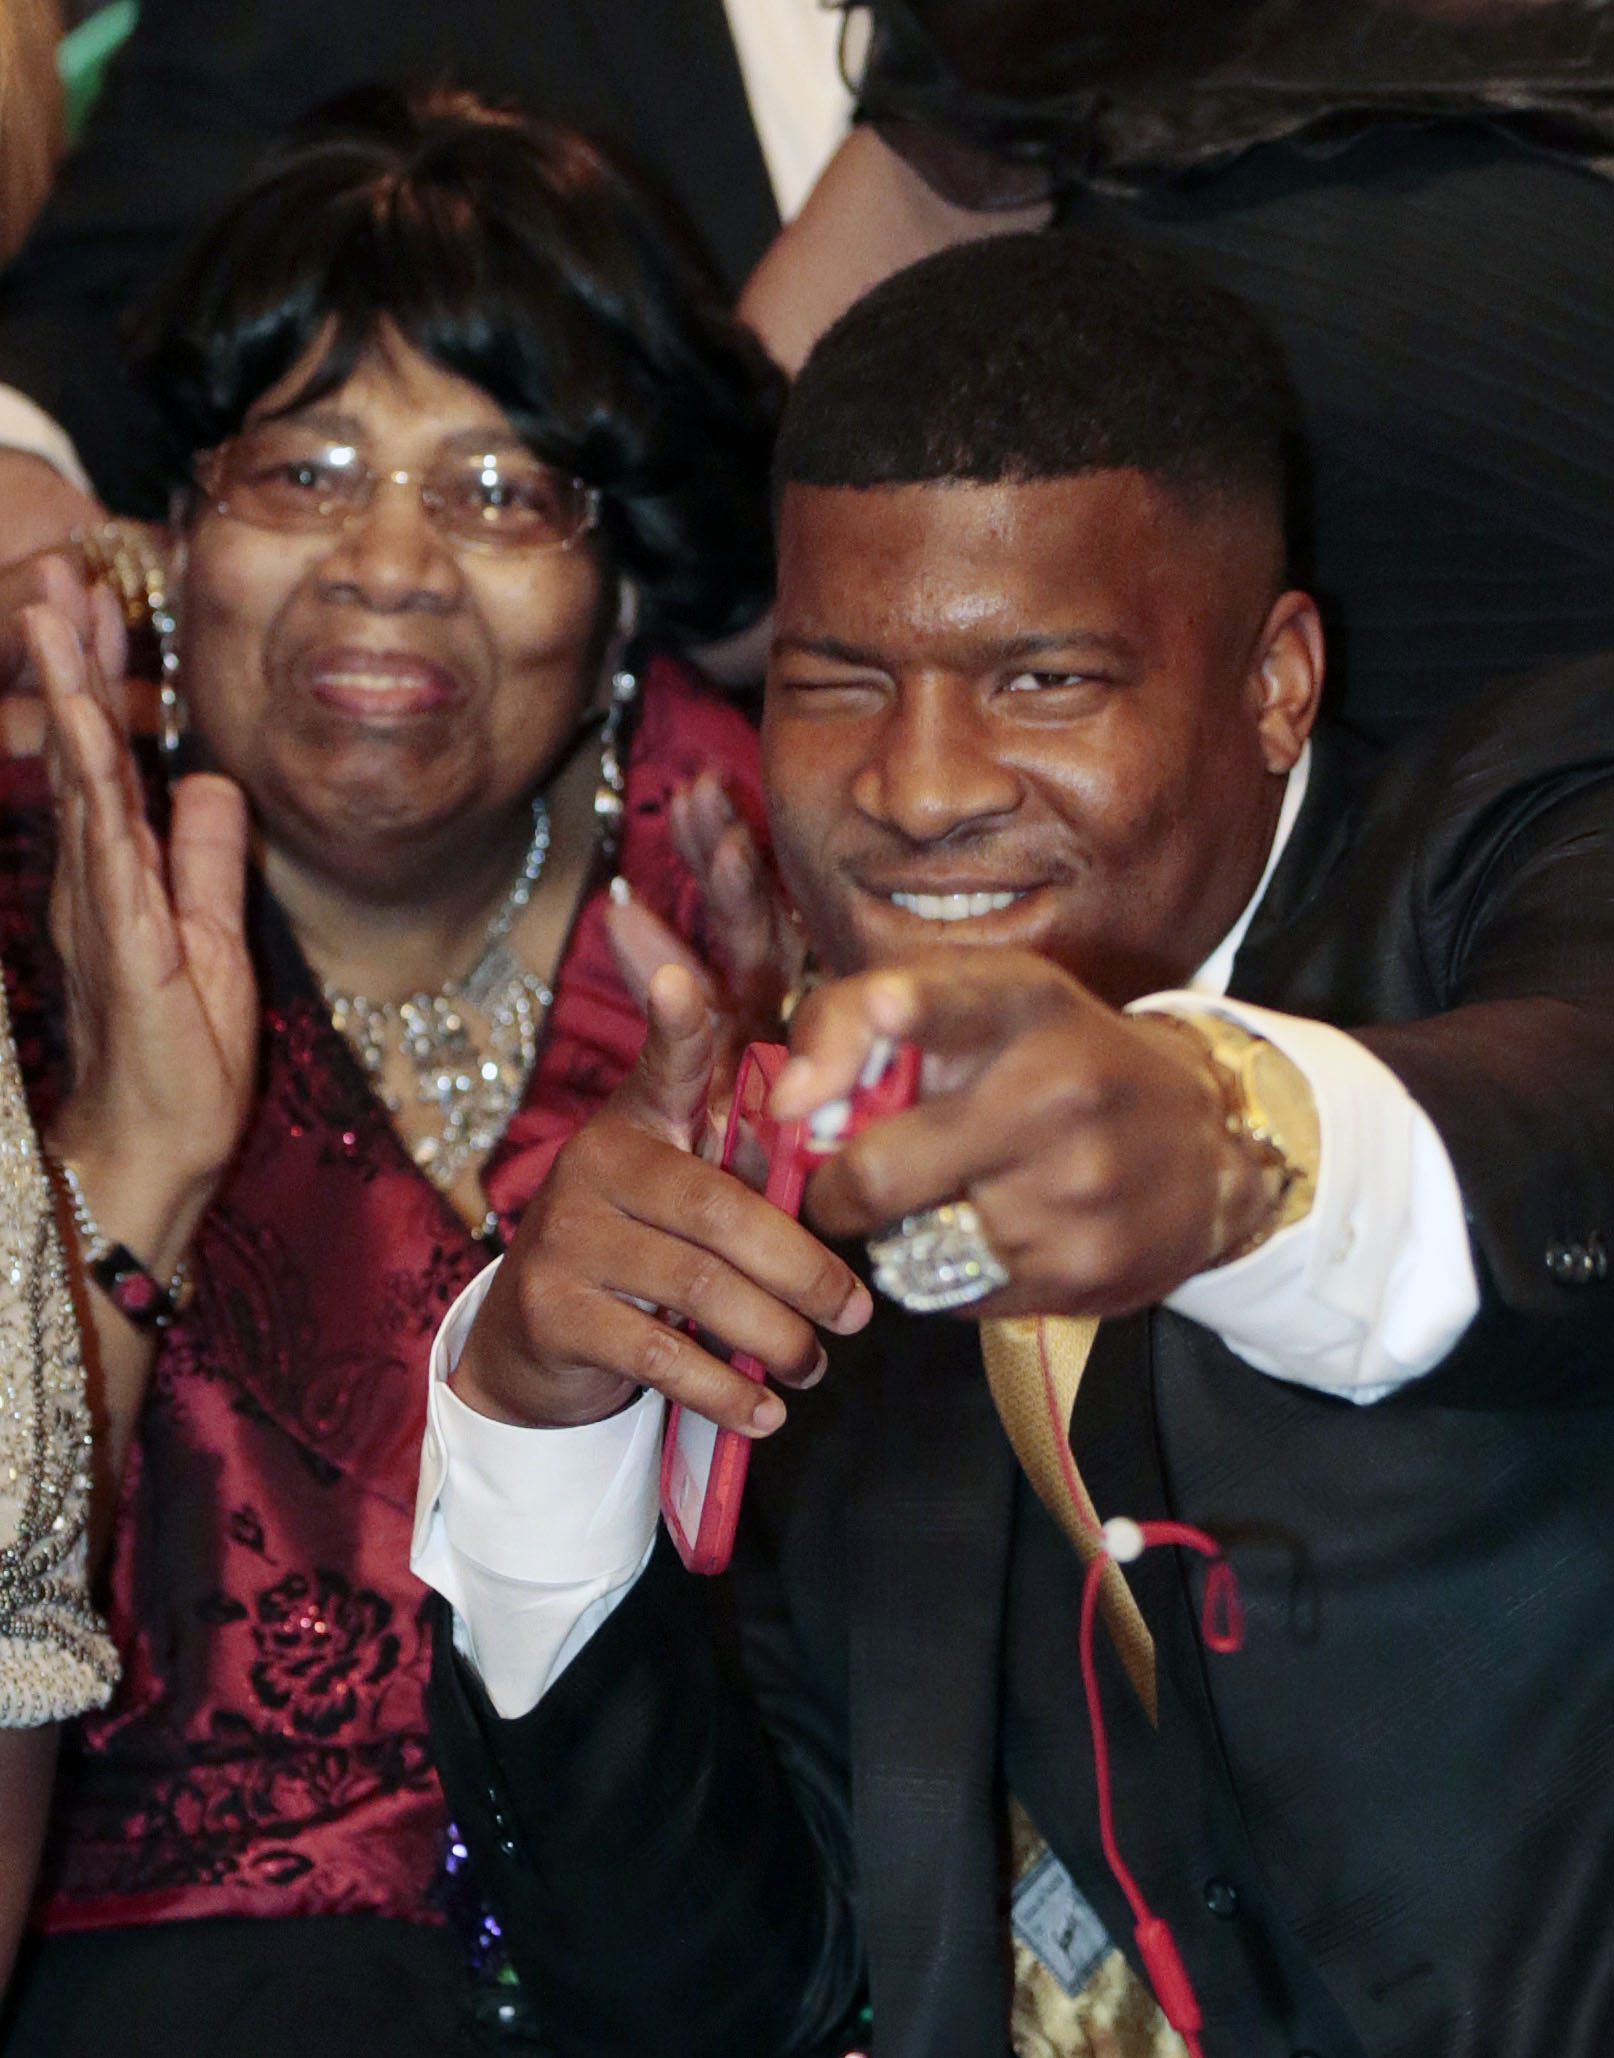 Jameis Winston reacts to the announcement with his Grandmother, Myrtle Winston, watching as the Tampa Bay Buccaneers select him as the number one draft pick in the 2015 NFL Draft, Thursday, April 30, 2015, in Bessemer, Ala. (AP Photo/Butch Dill)